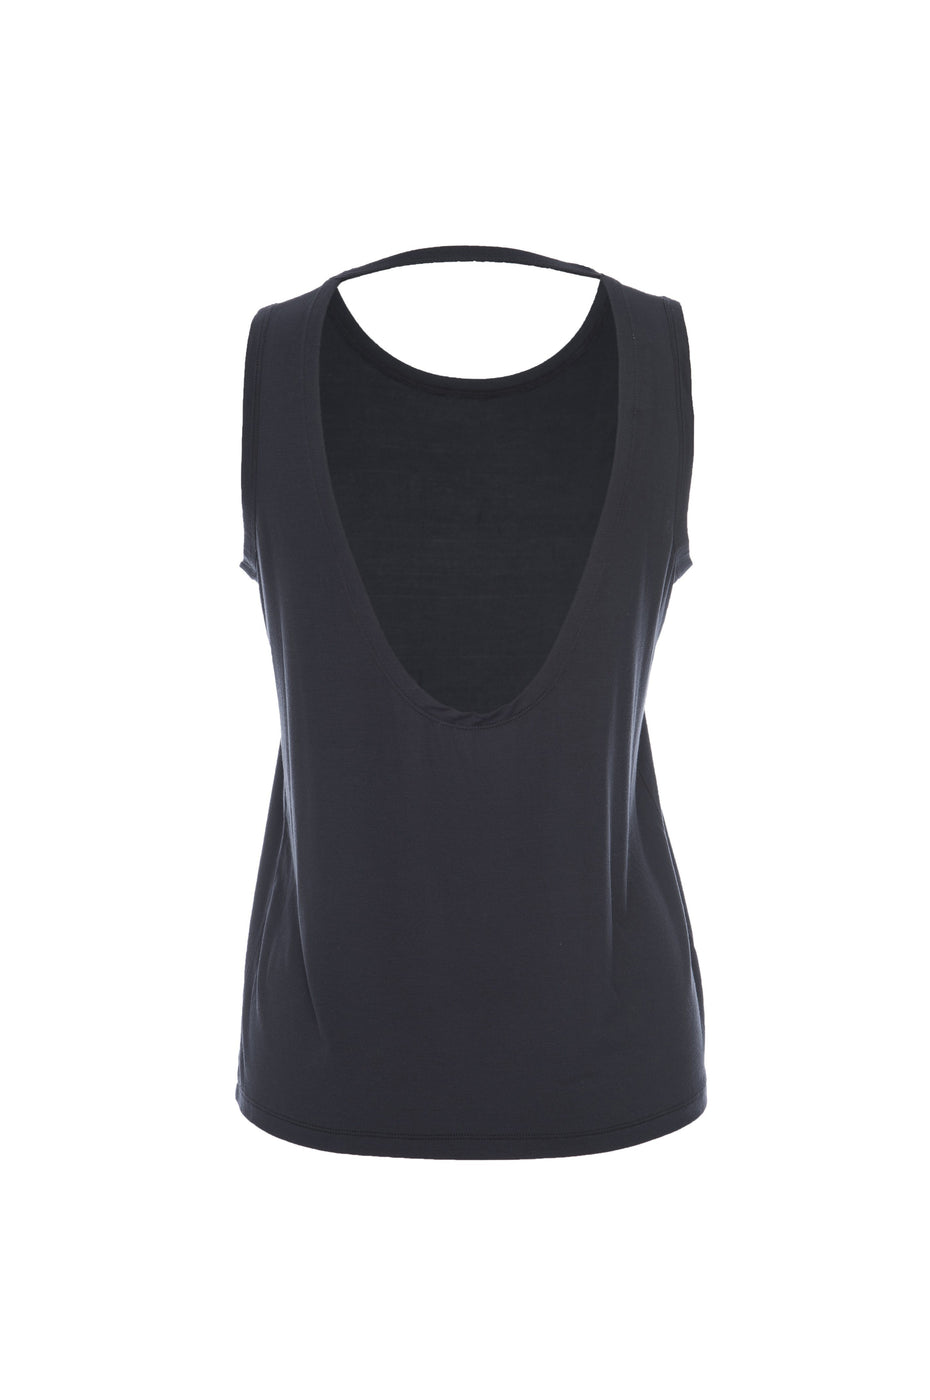 THE EASY BREEZY OPEN-BACK TANK | BLACK001